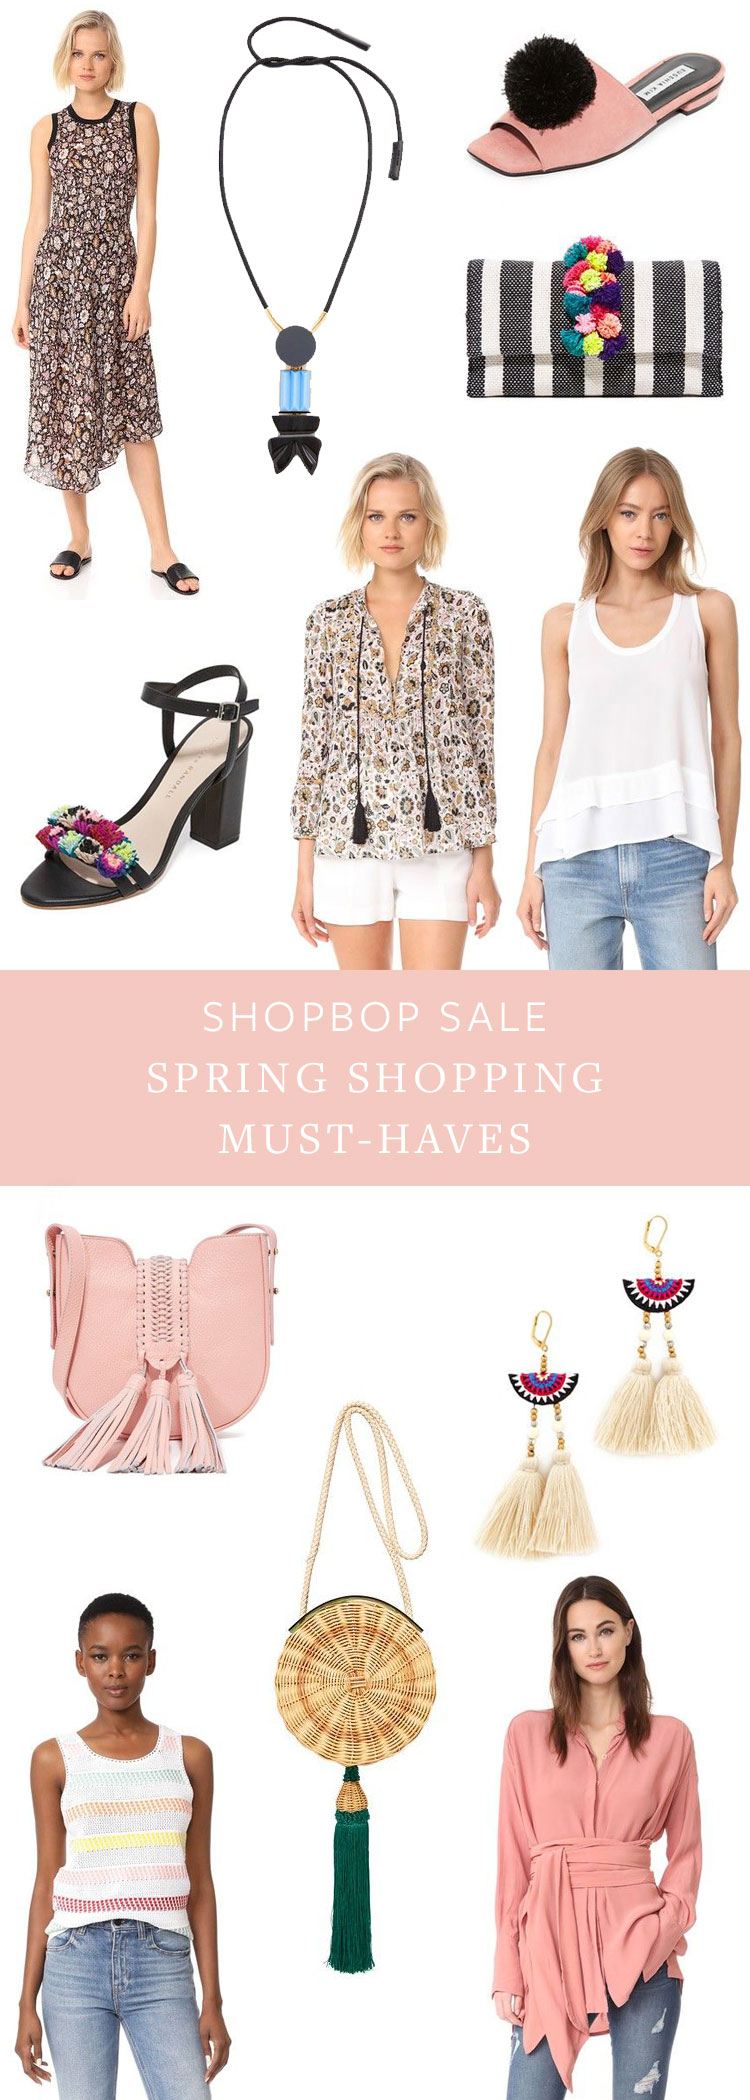 spring shopping must-haves from the shopbop sale! find all my boho fashion inspiration on jojotastic.com